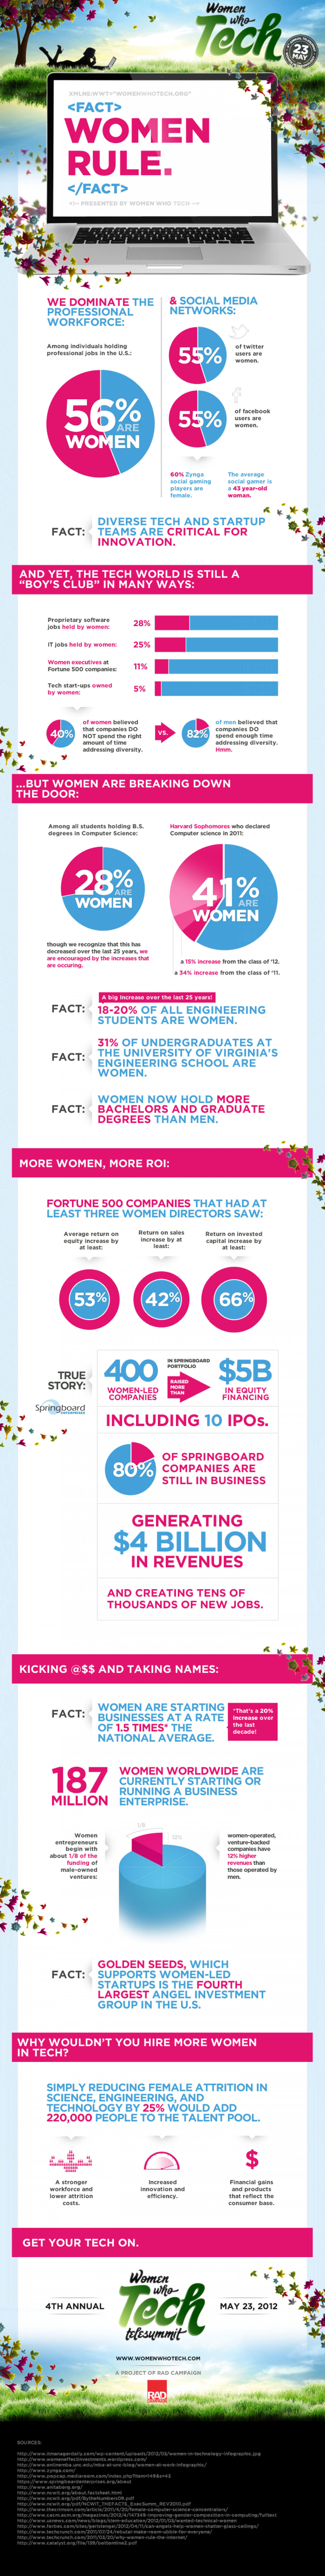 Women rule in tech Infographic